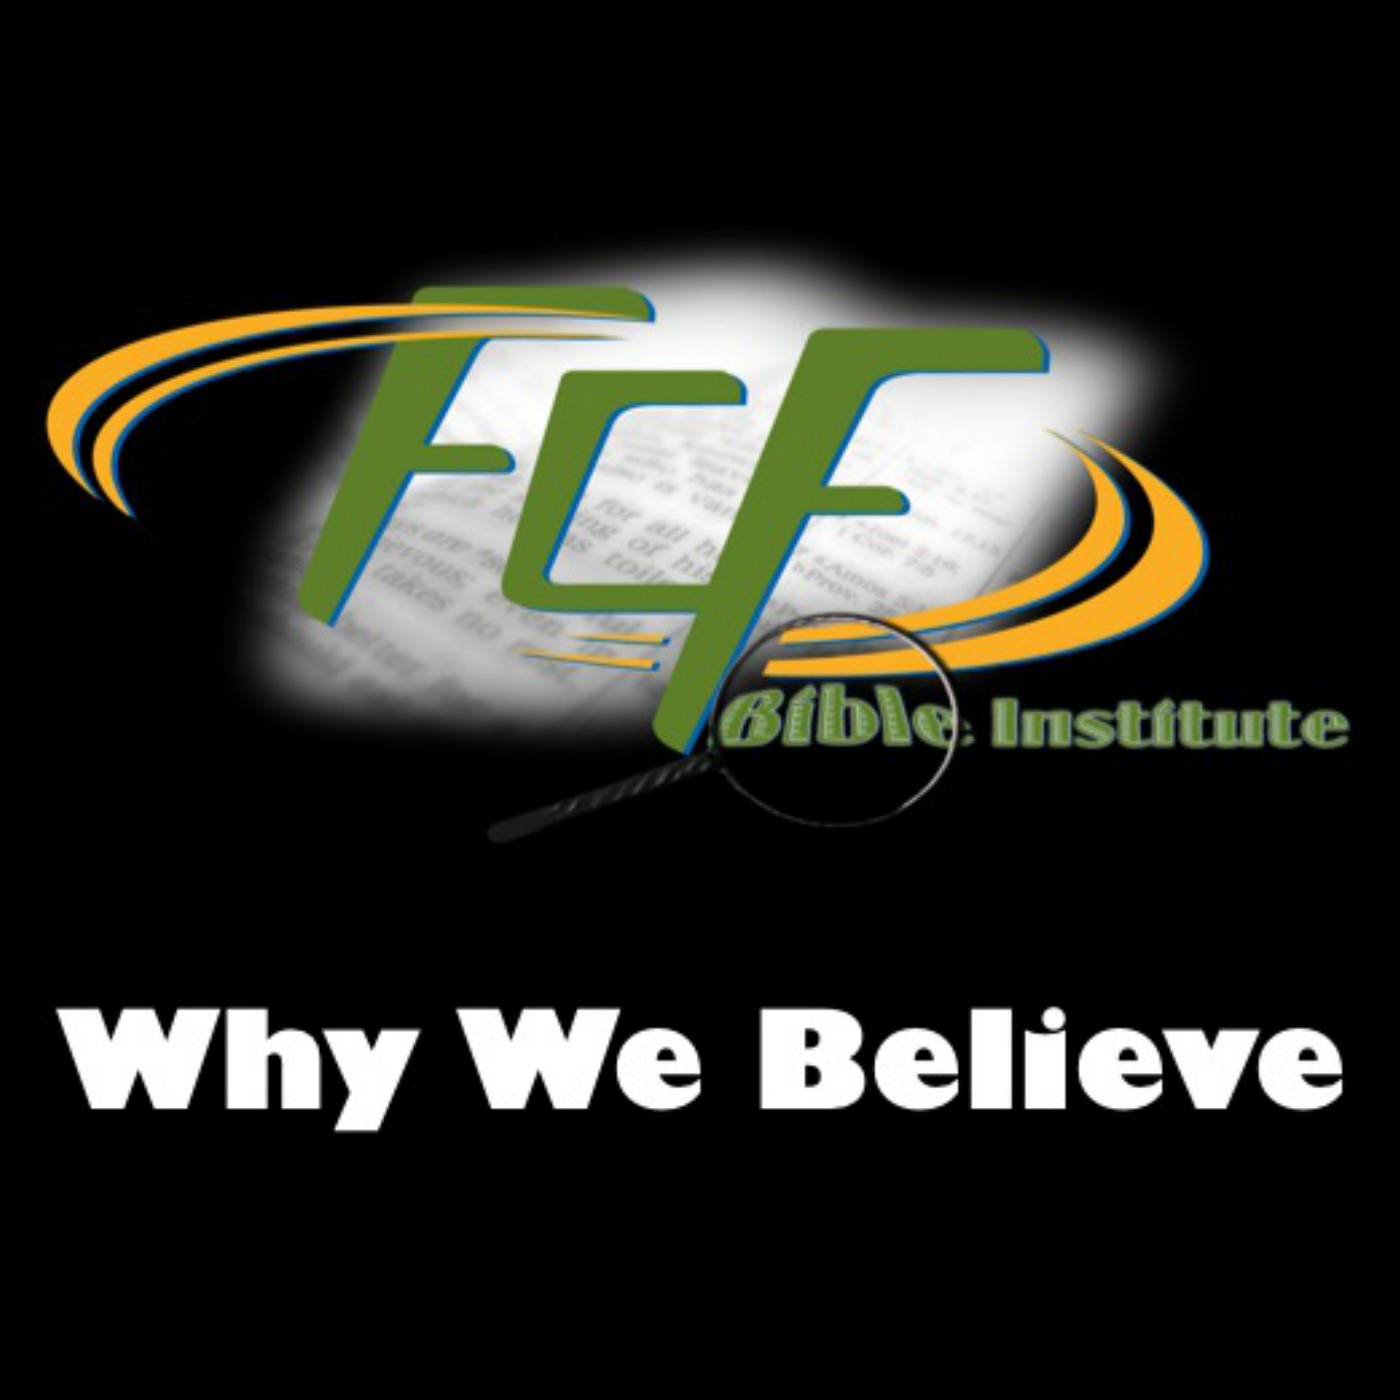 FCF Bible Institute Spring 2013